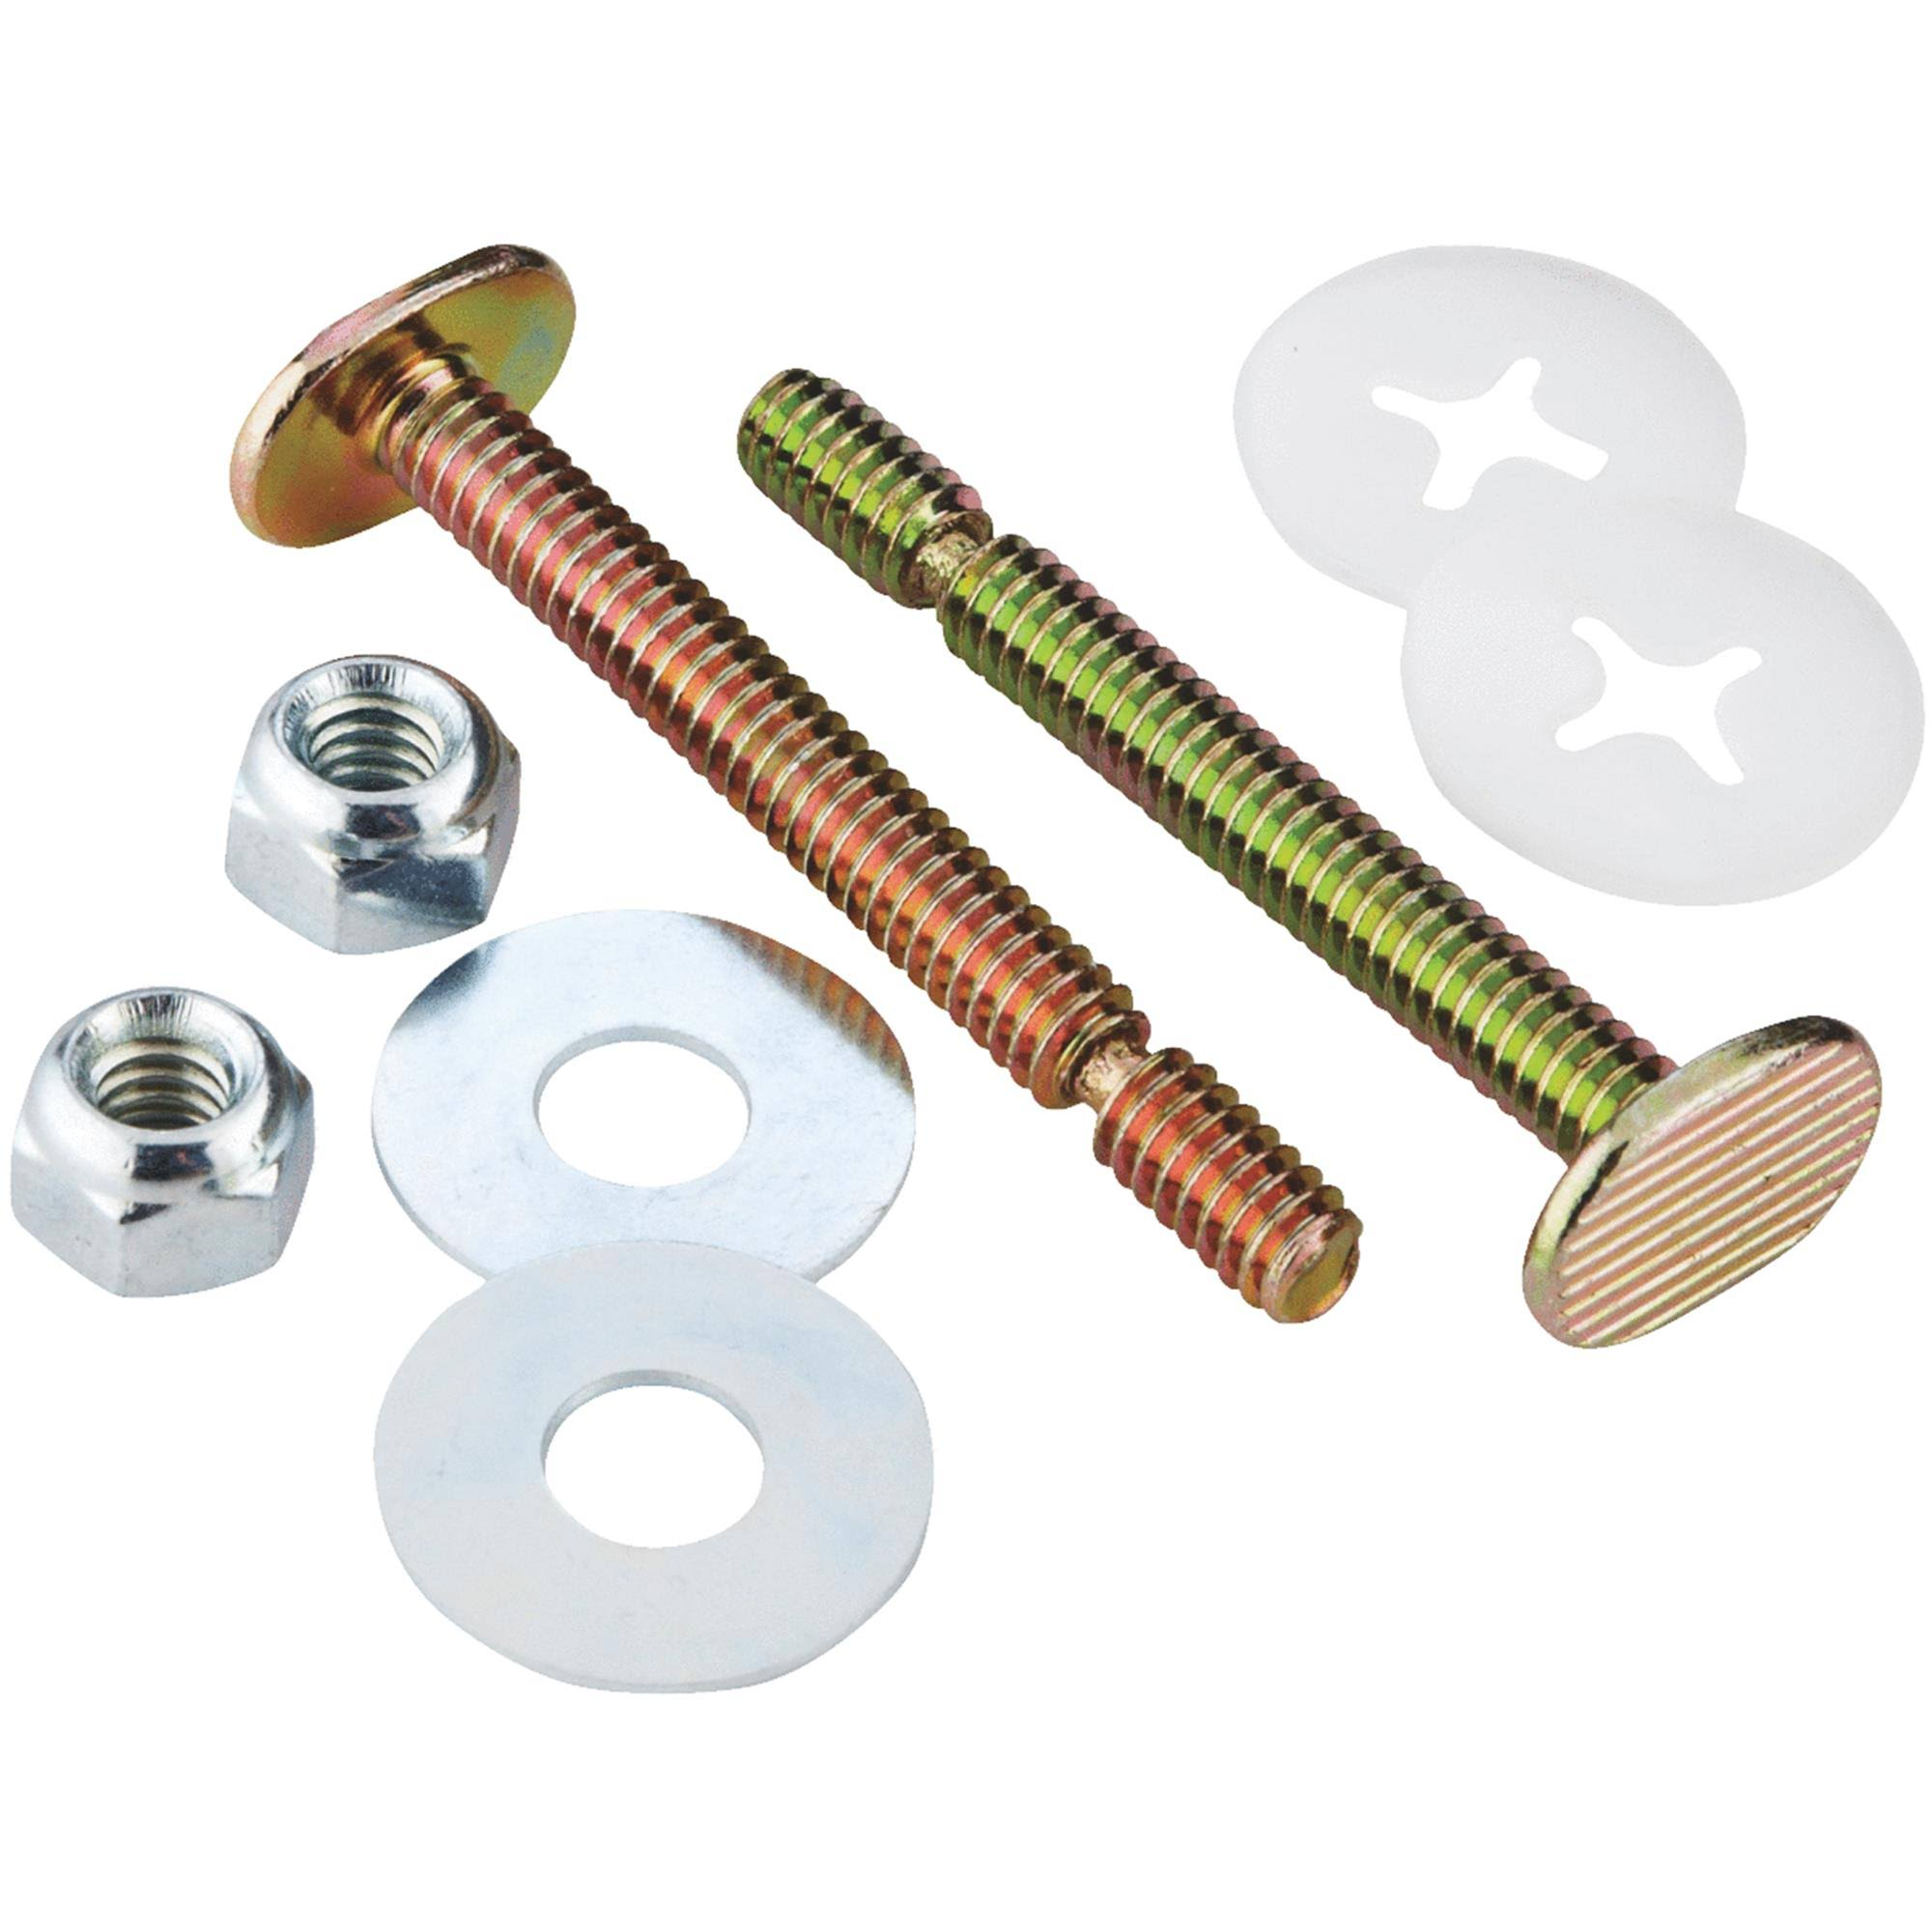 "Do It 1-1/4"" Toilet Bolt Set, 405493"